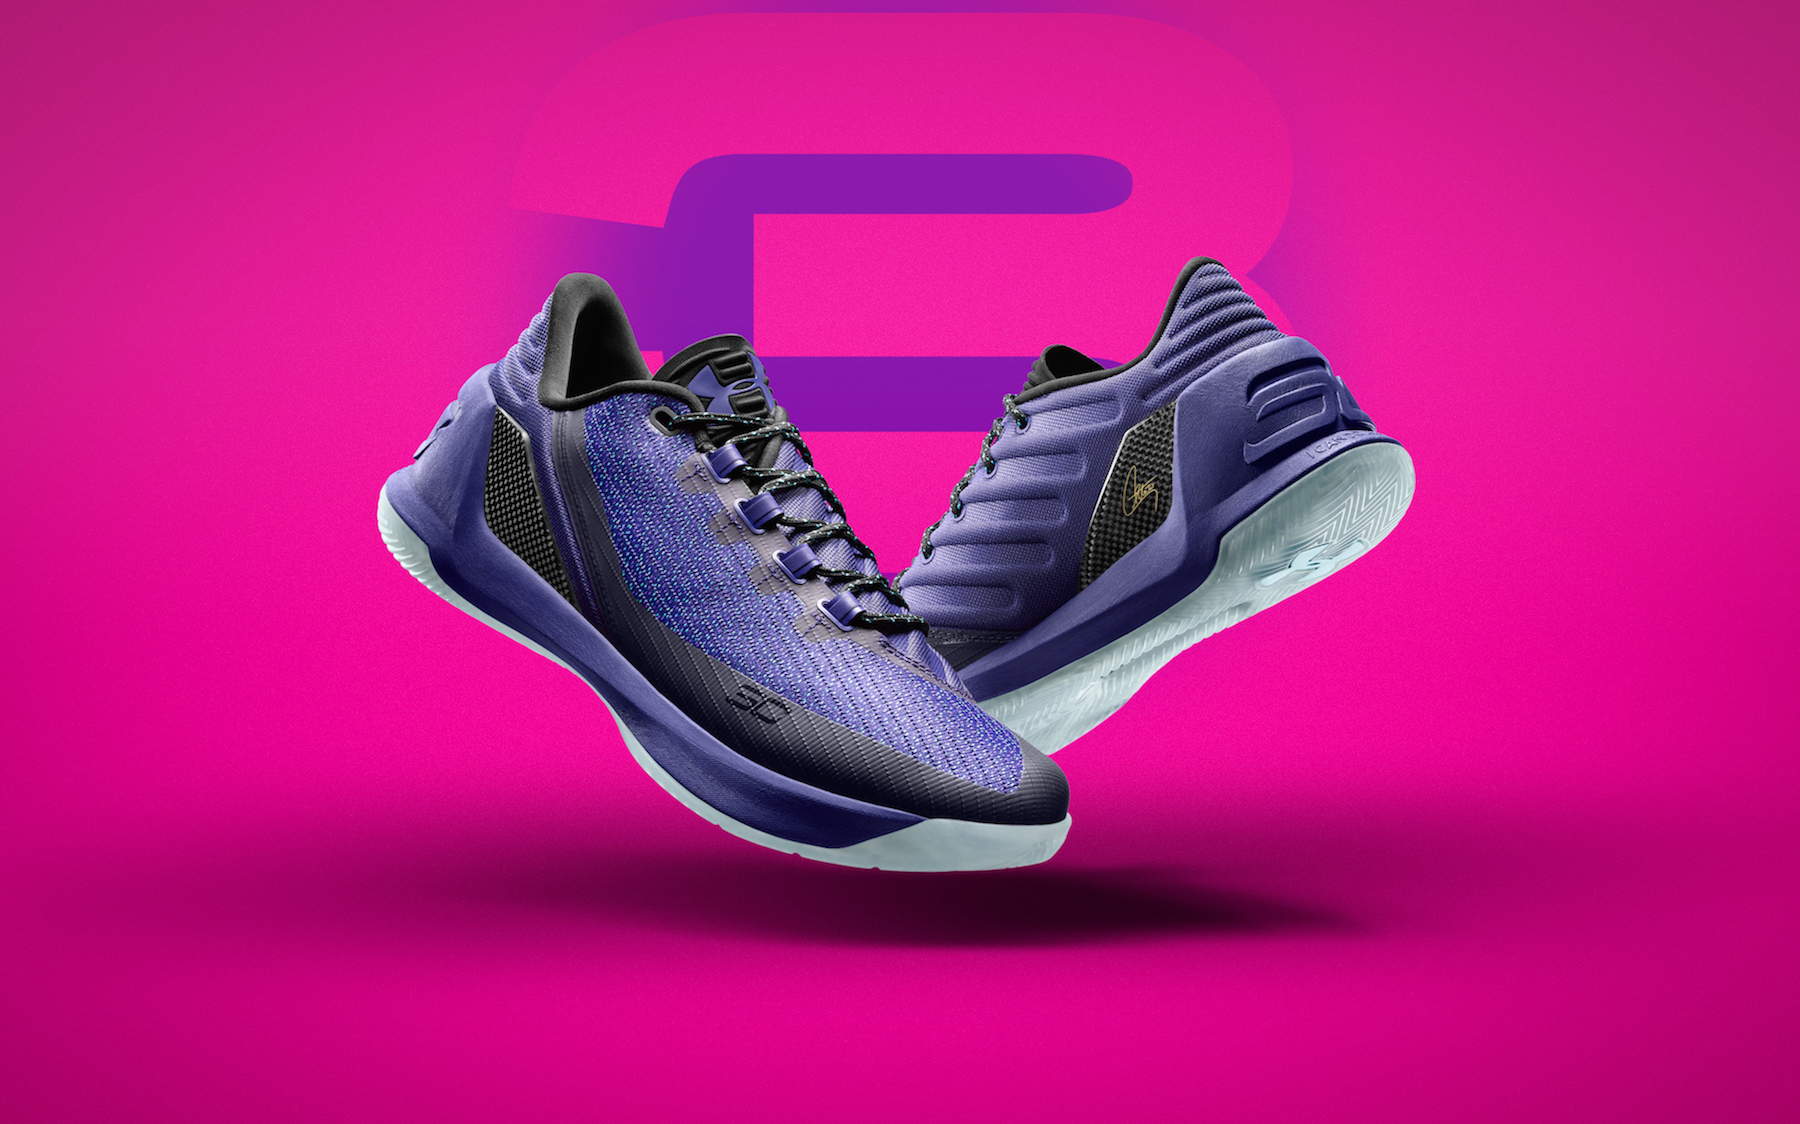 under armour Curry 3 low Dark Horse